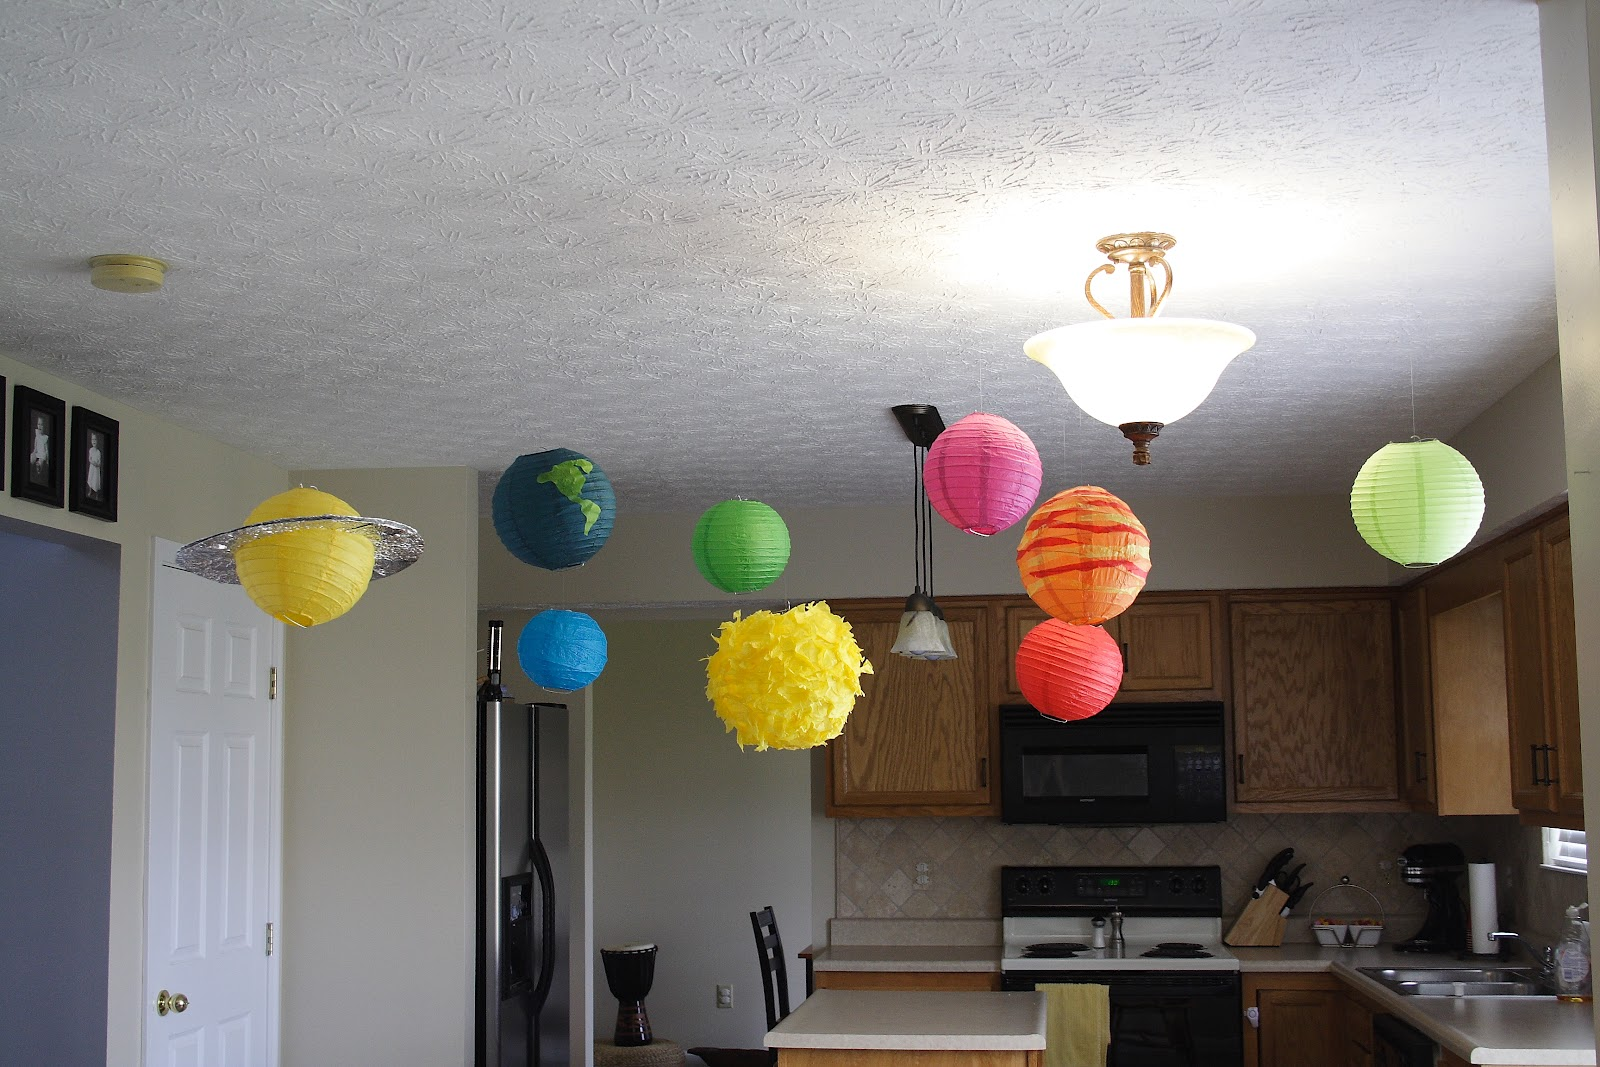 hang up solar system ceiling - photo #11